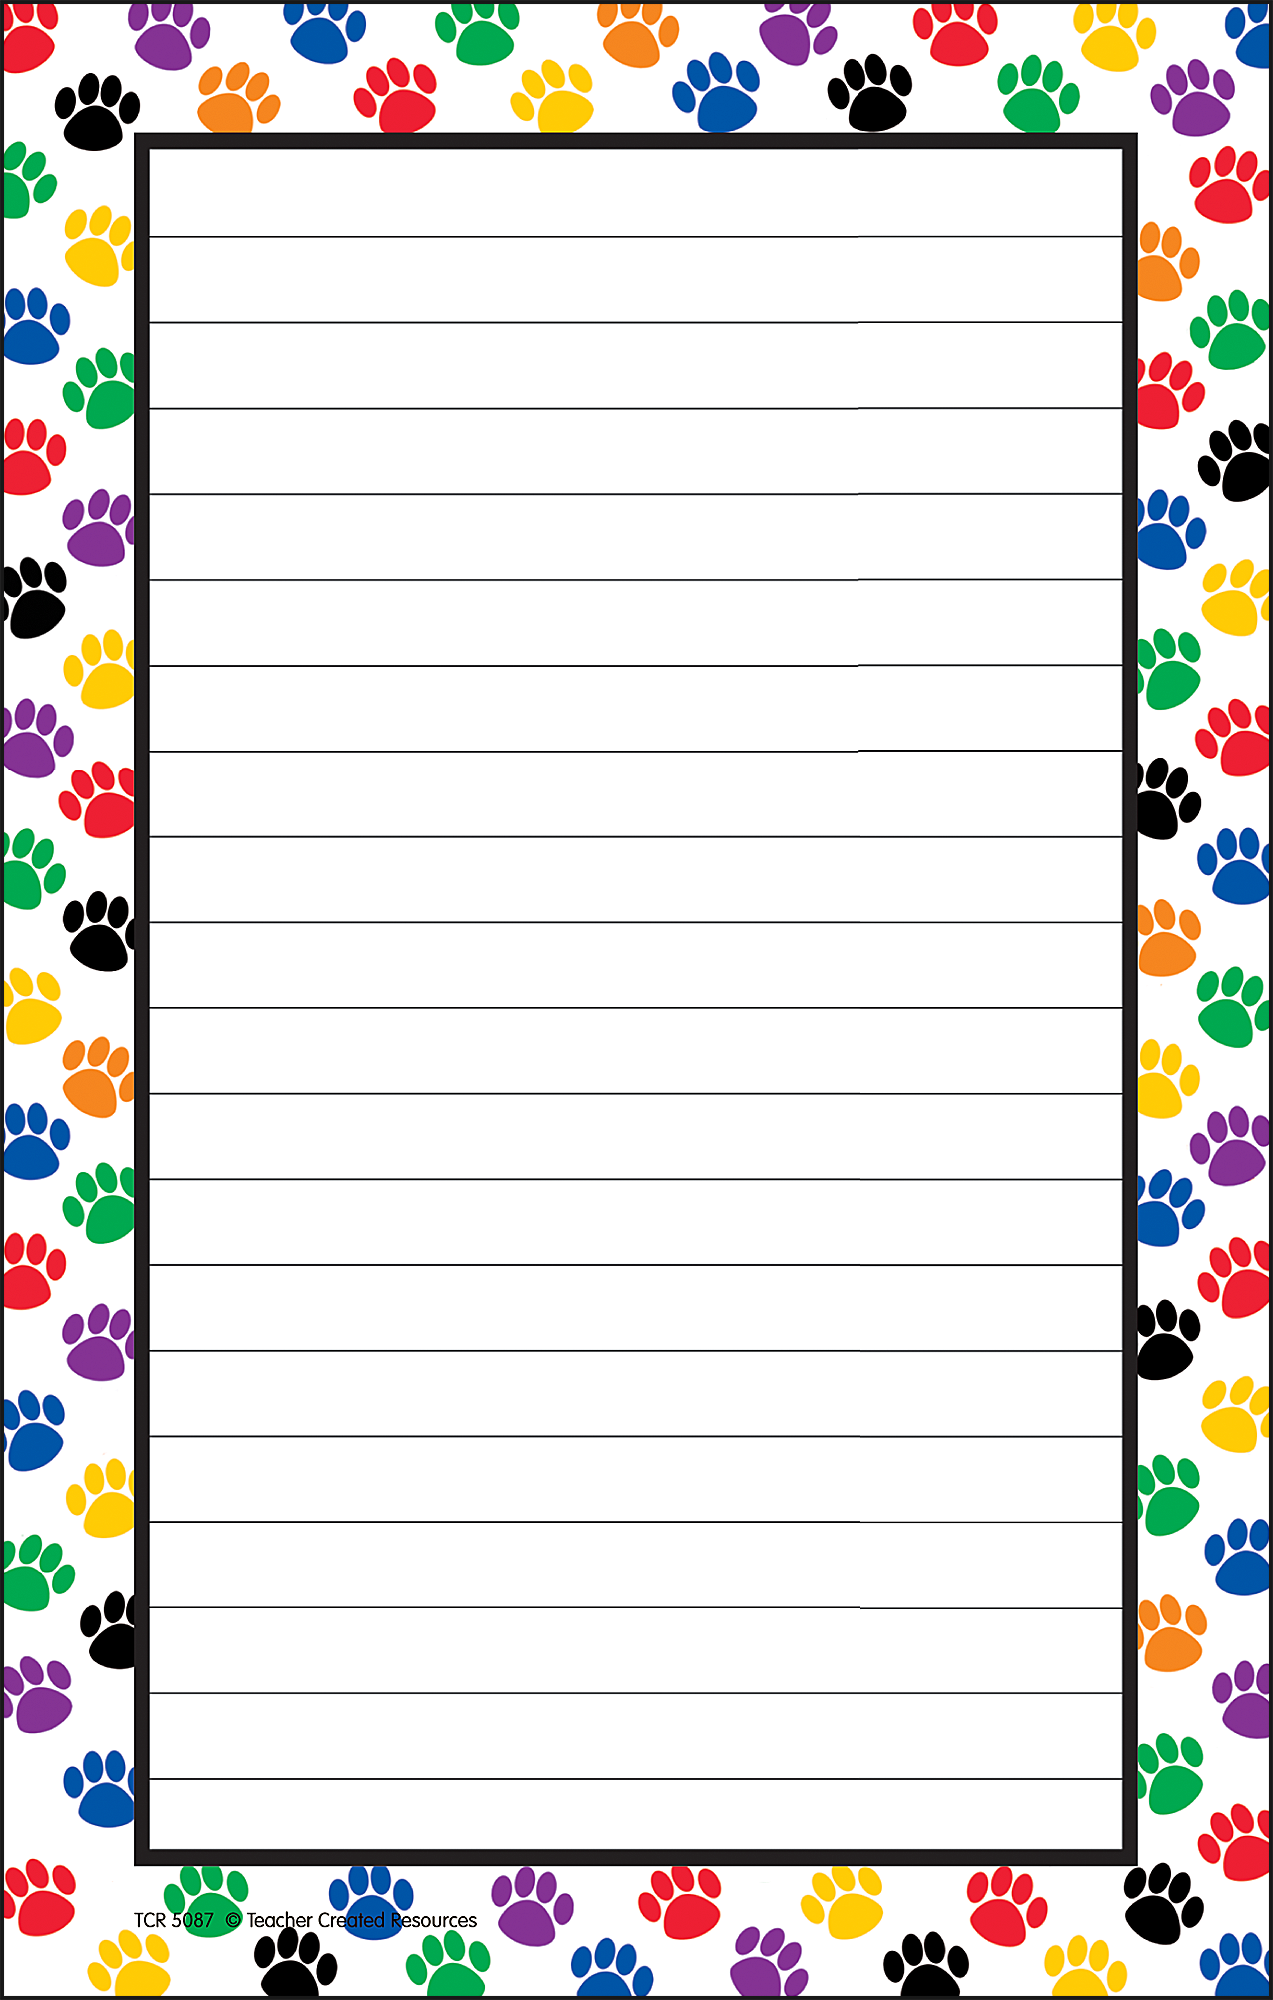 Blank Calendar With Lines : Colorful paw prints notepad tcr teacher created